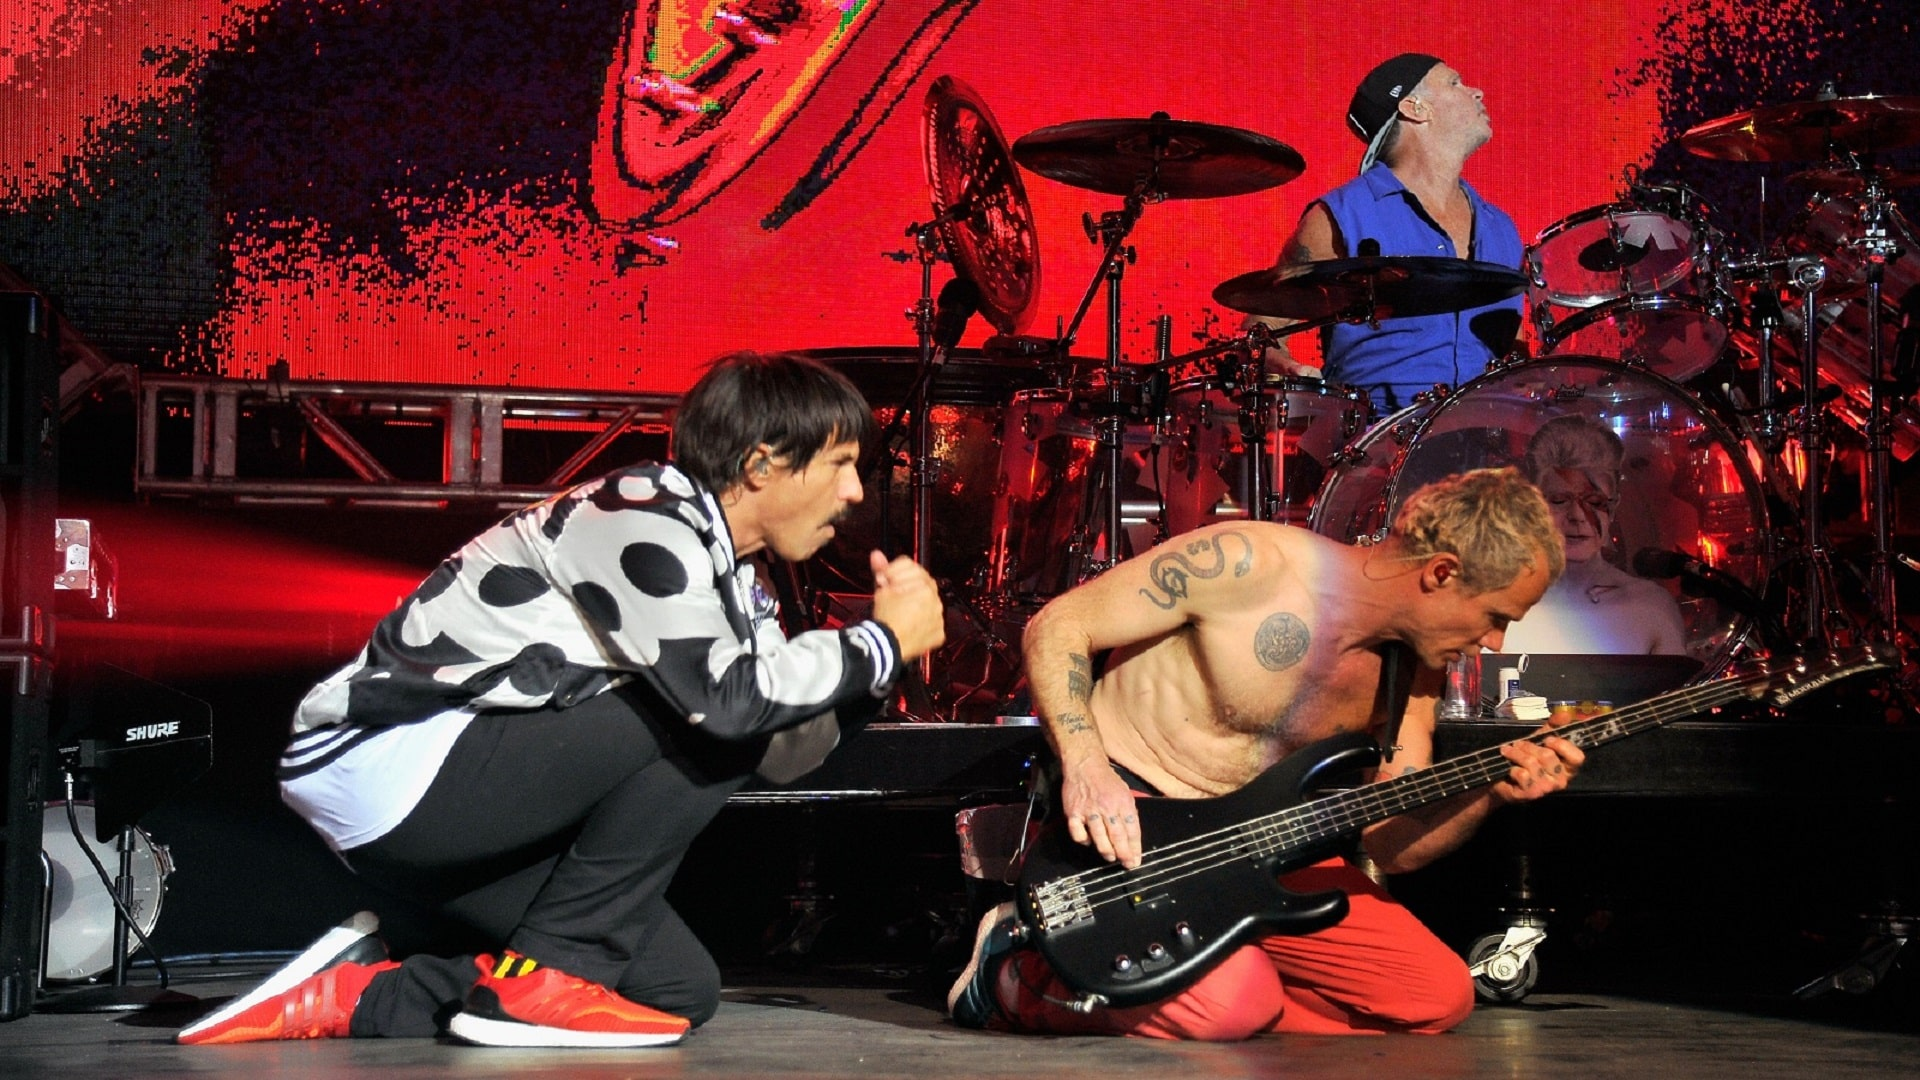 #QuizX: ¿Qué tanto sabe de los Red Hot Chili Peppers?